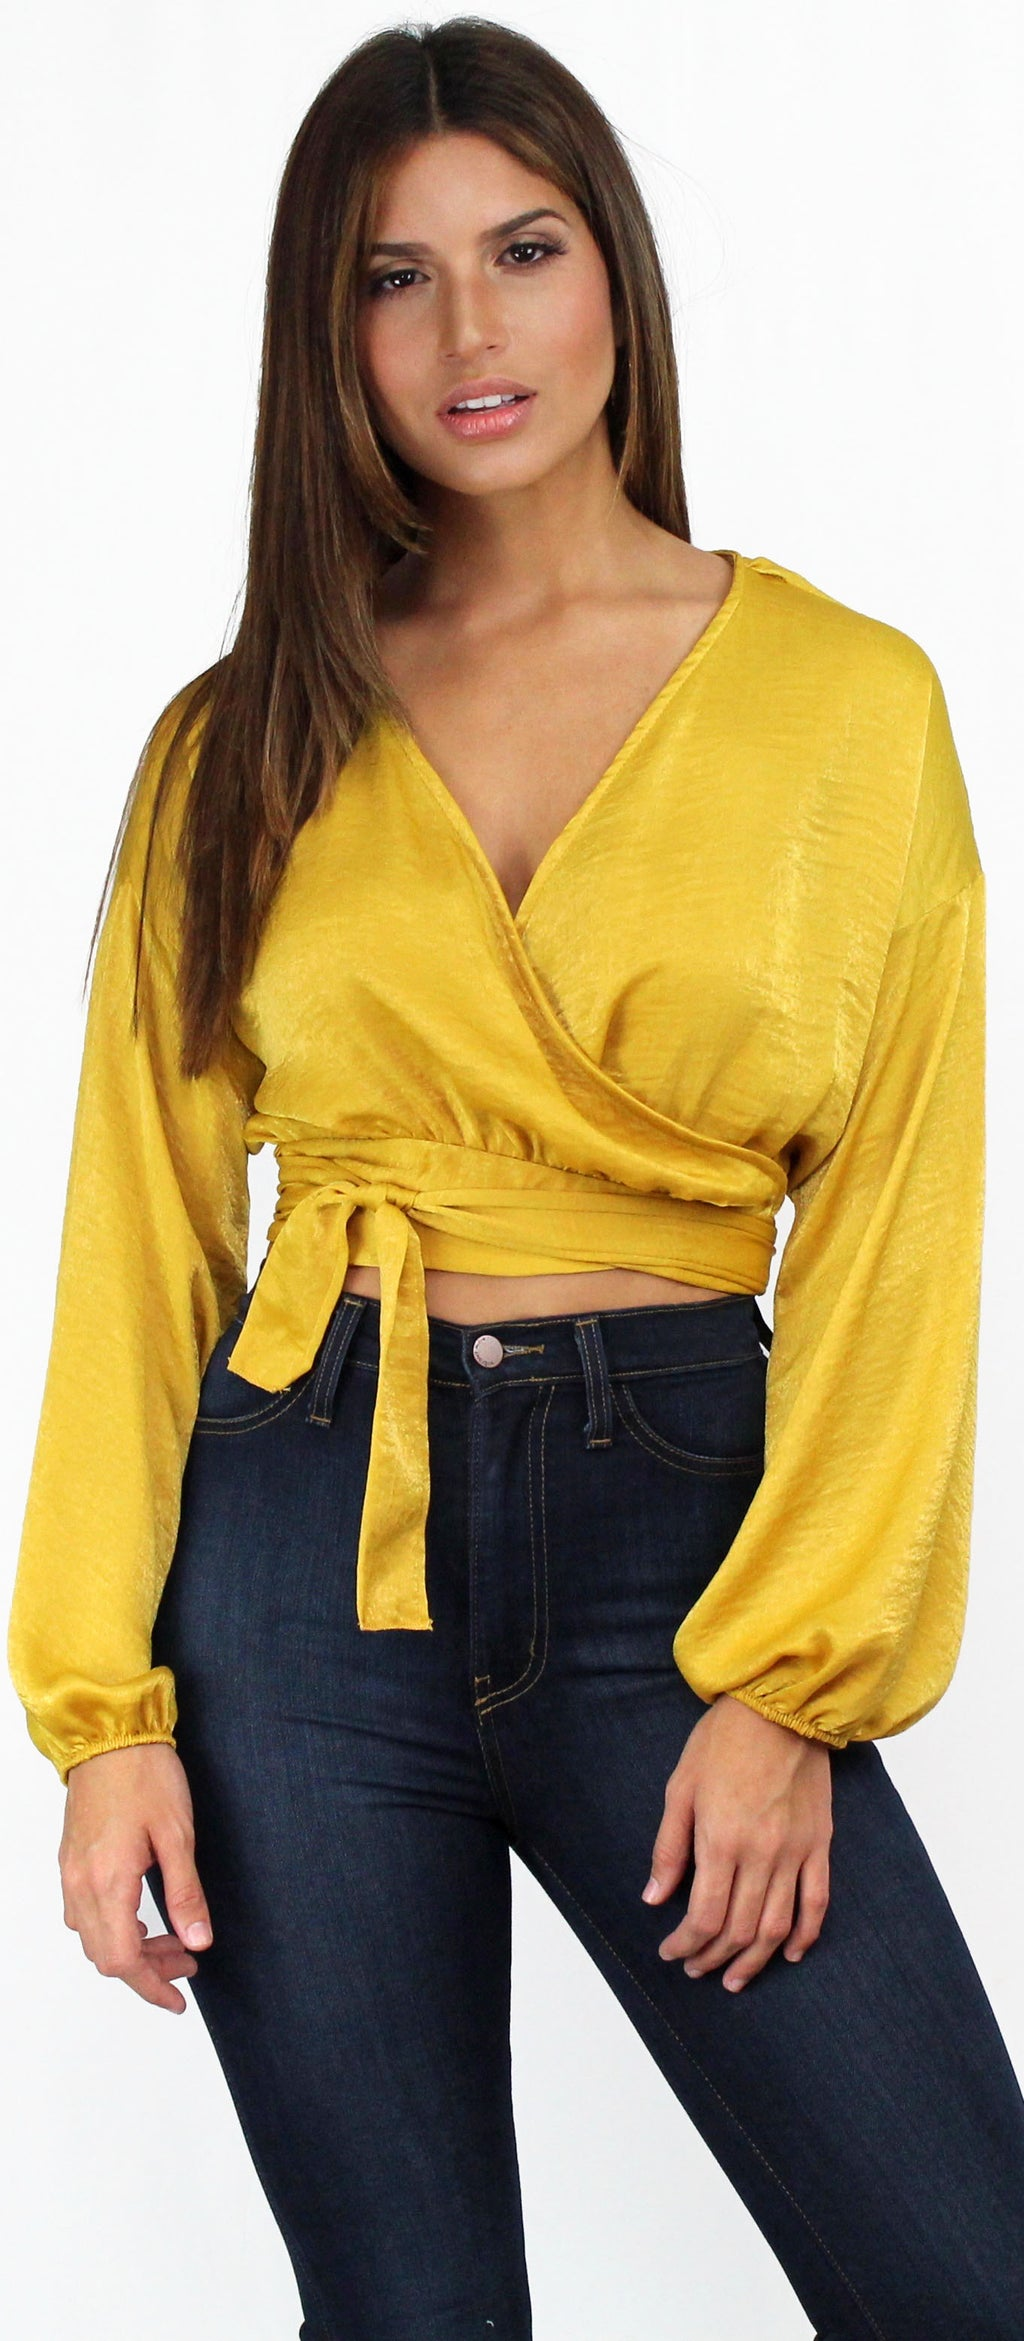 Simply Amazing Mustard Satin Blouse